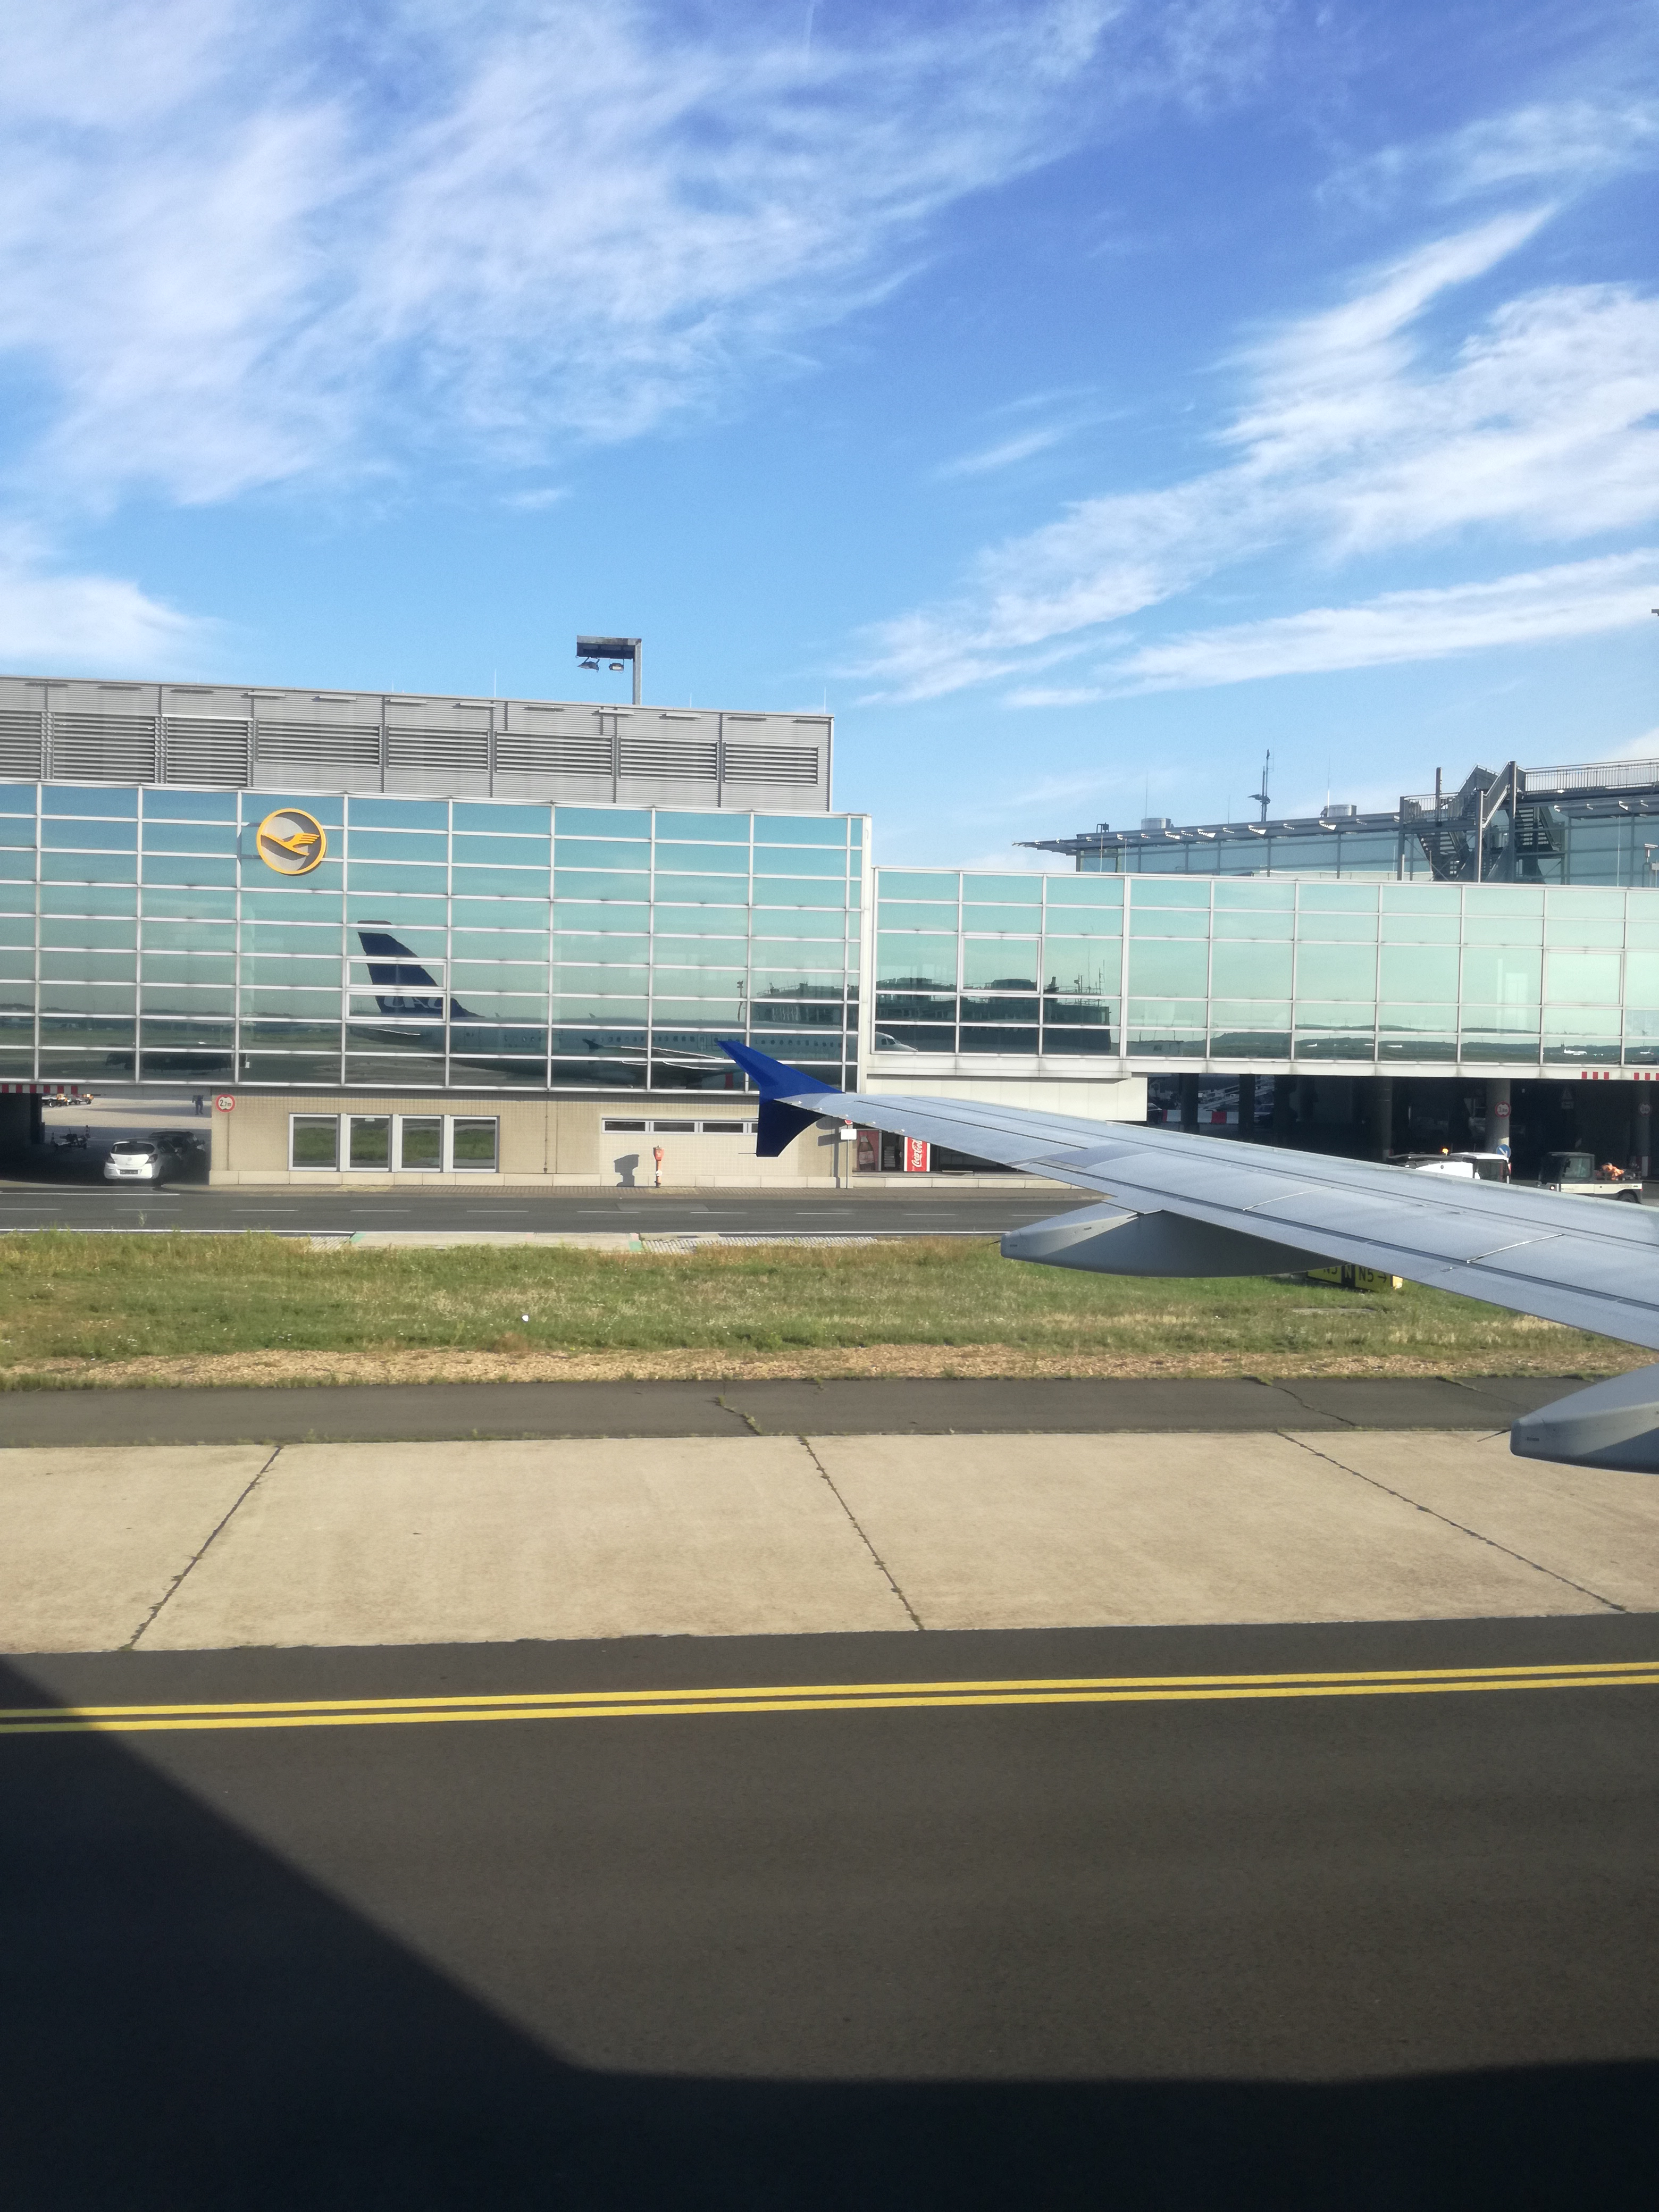 Picture of Lufthansa buildings in an Airport